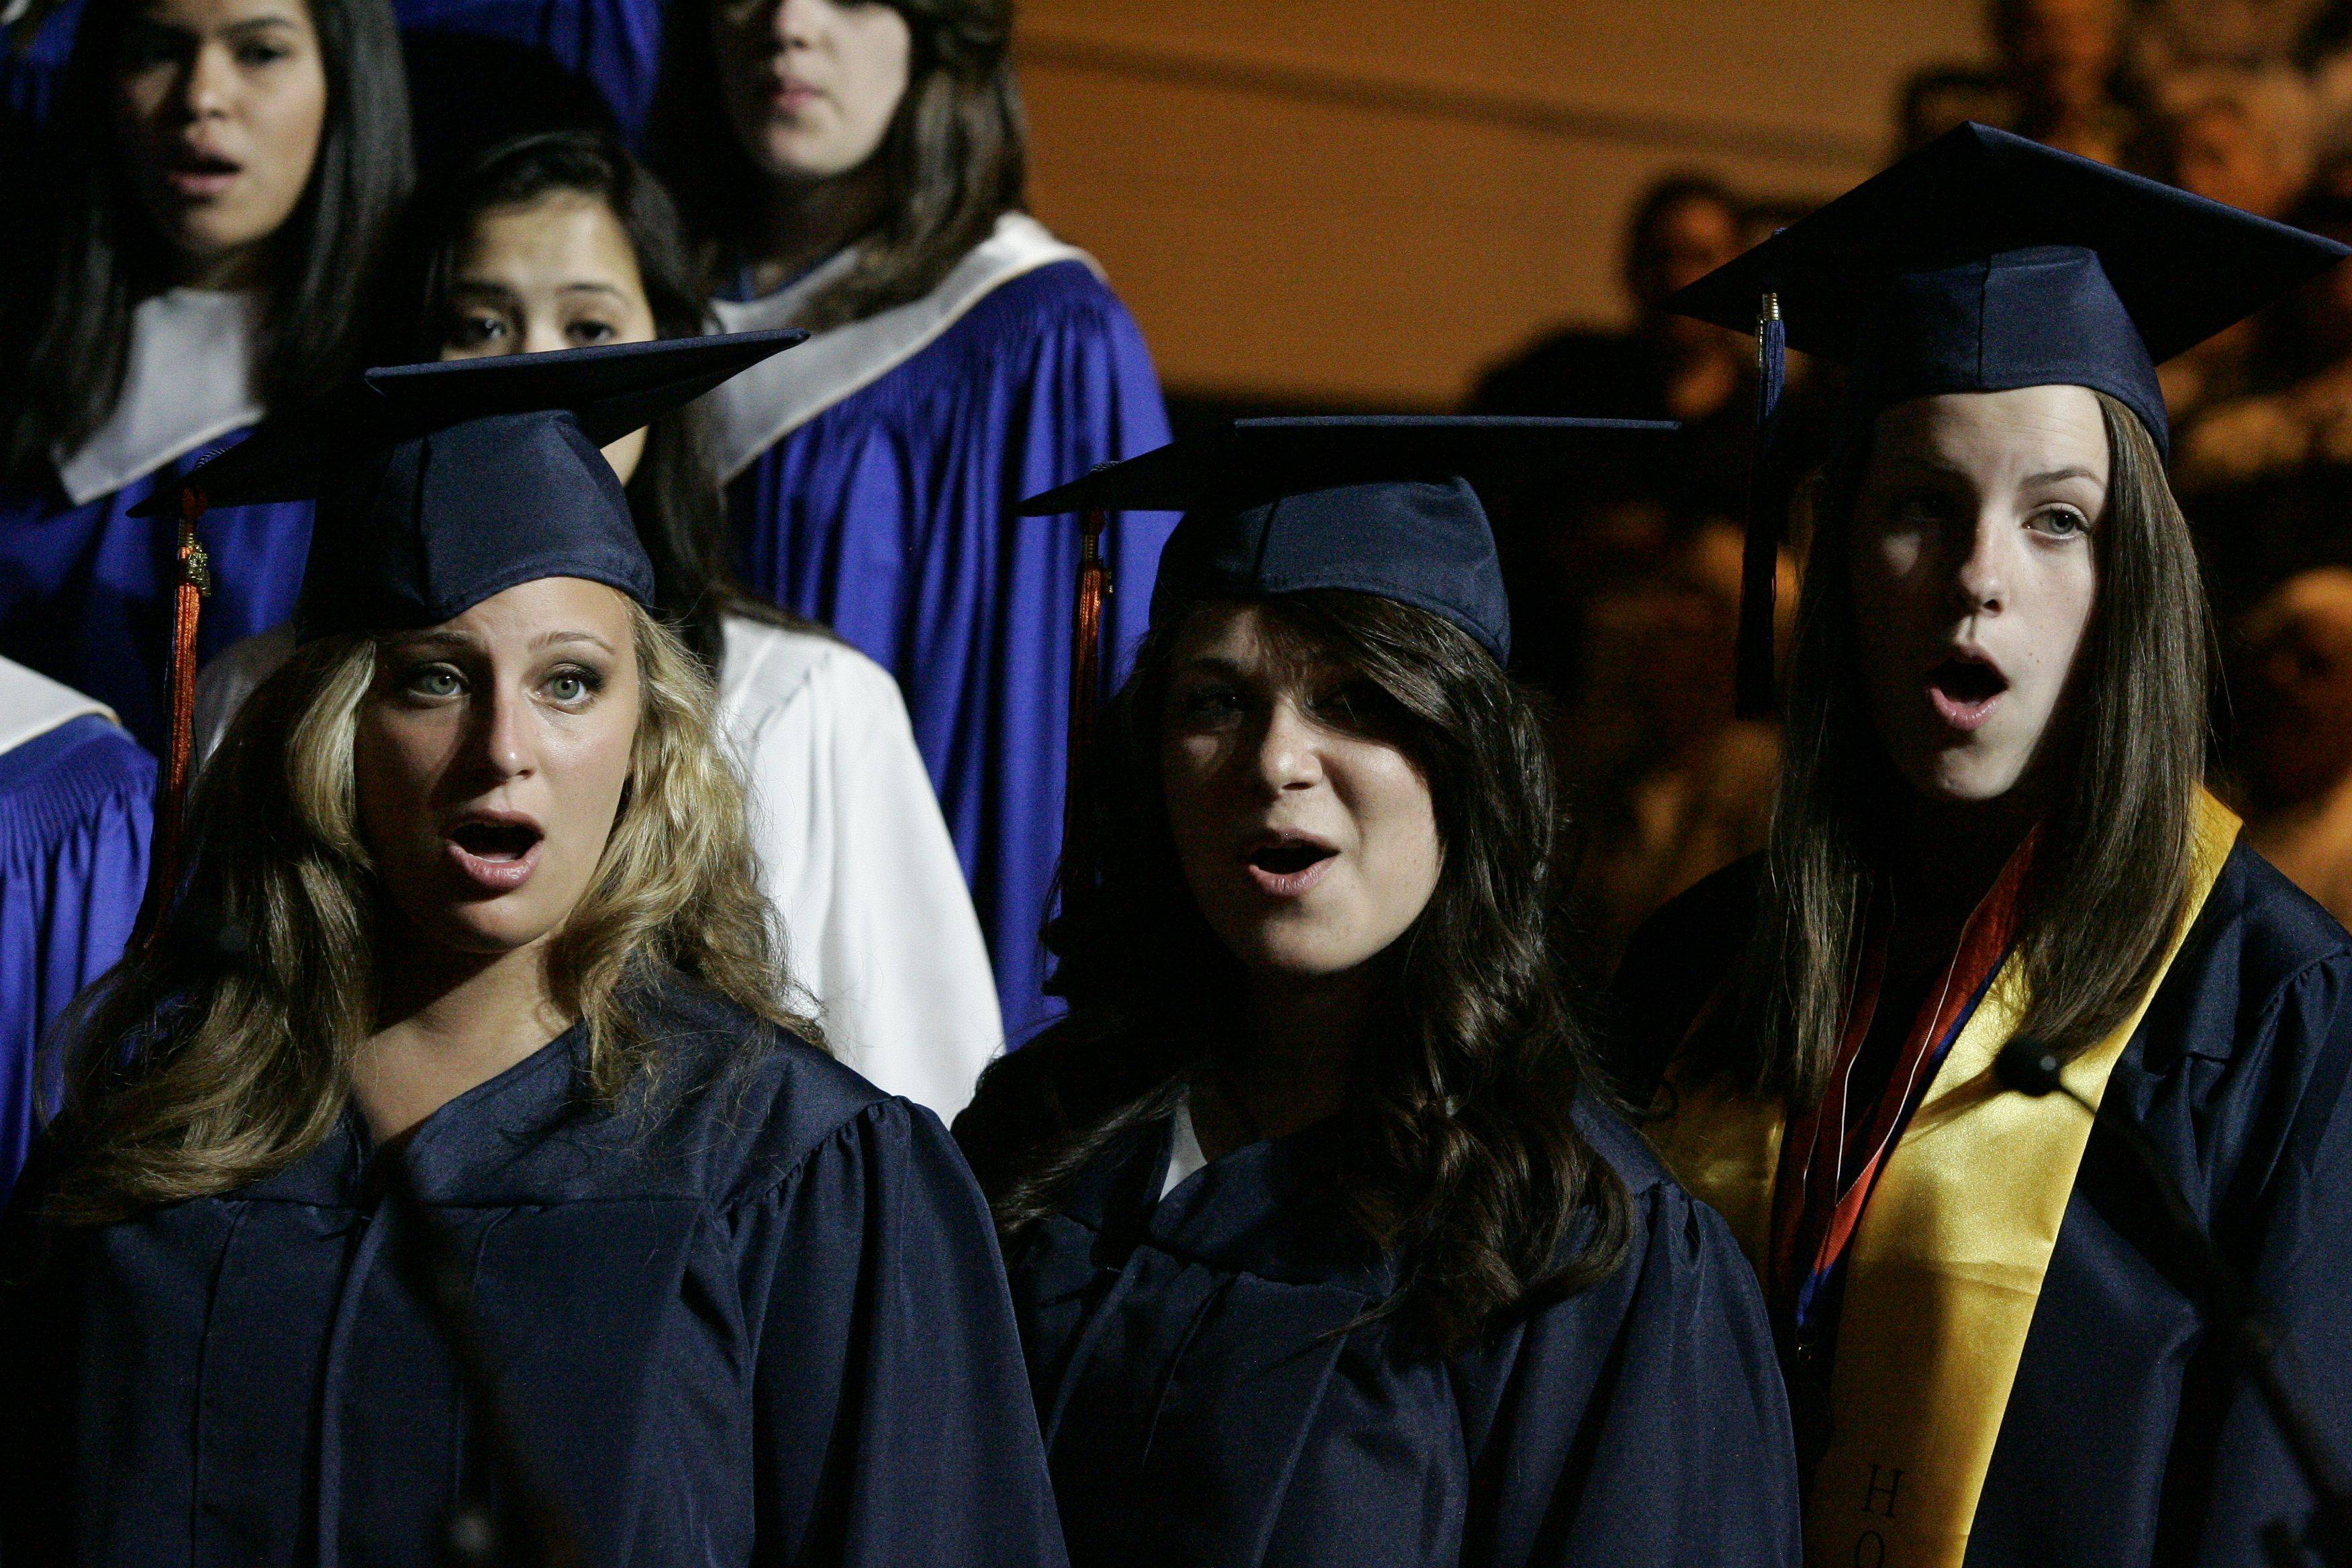 Images from the Buffalo Grove high school graduation on Sunday, June 5th.